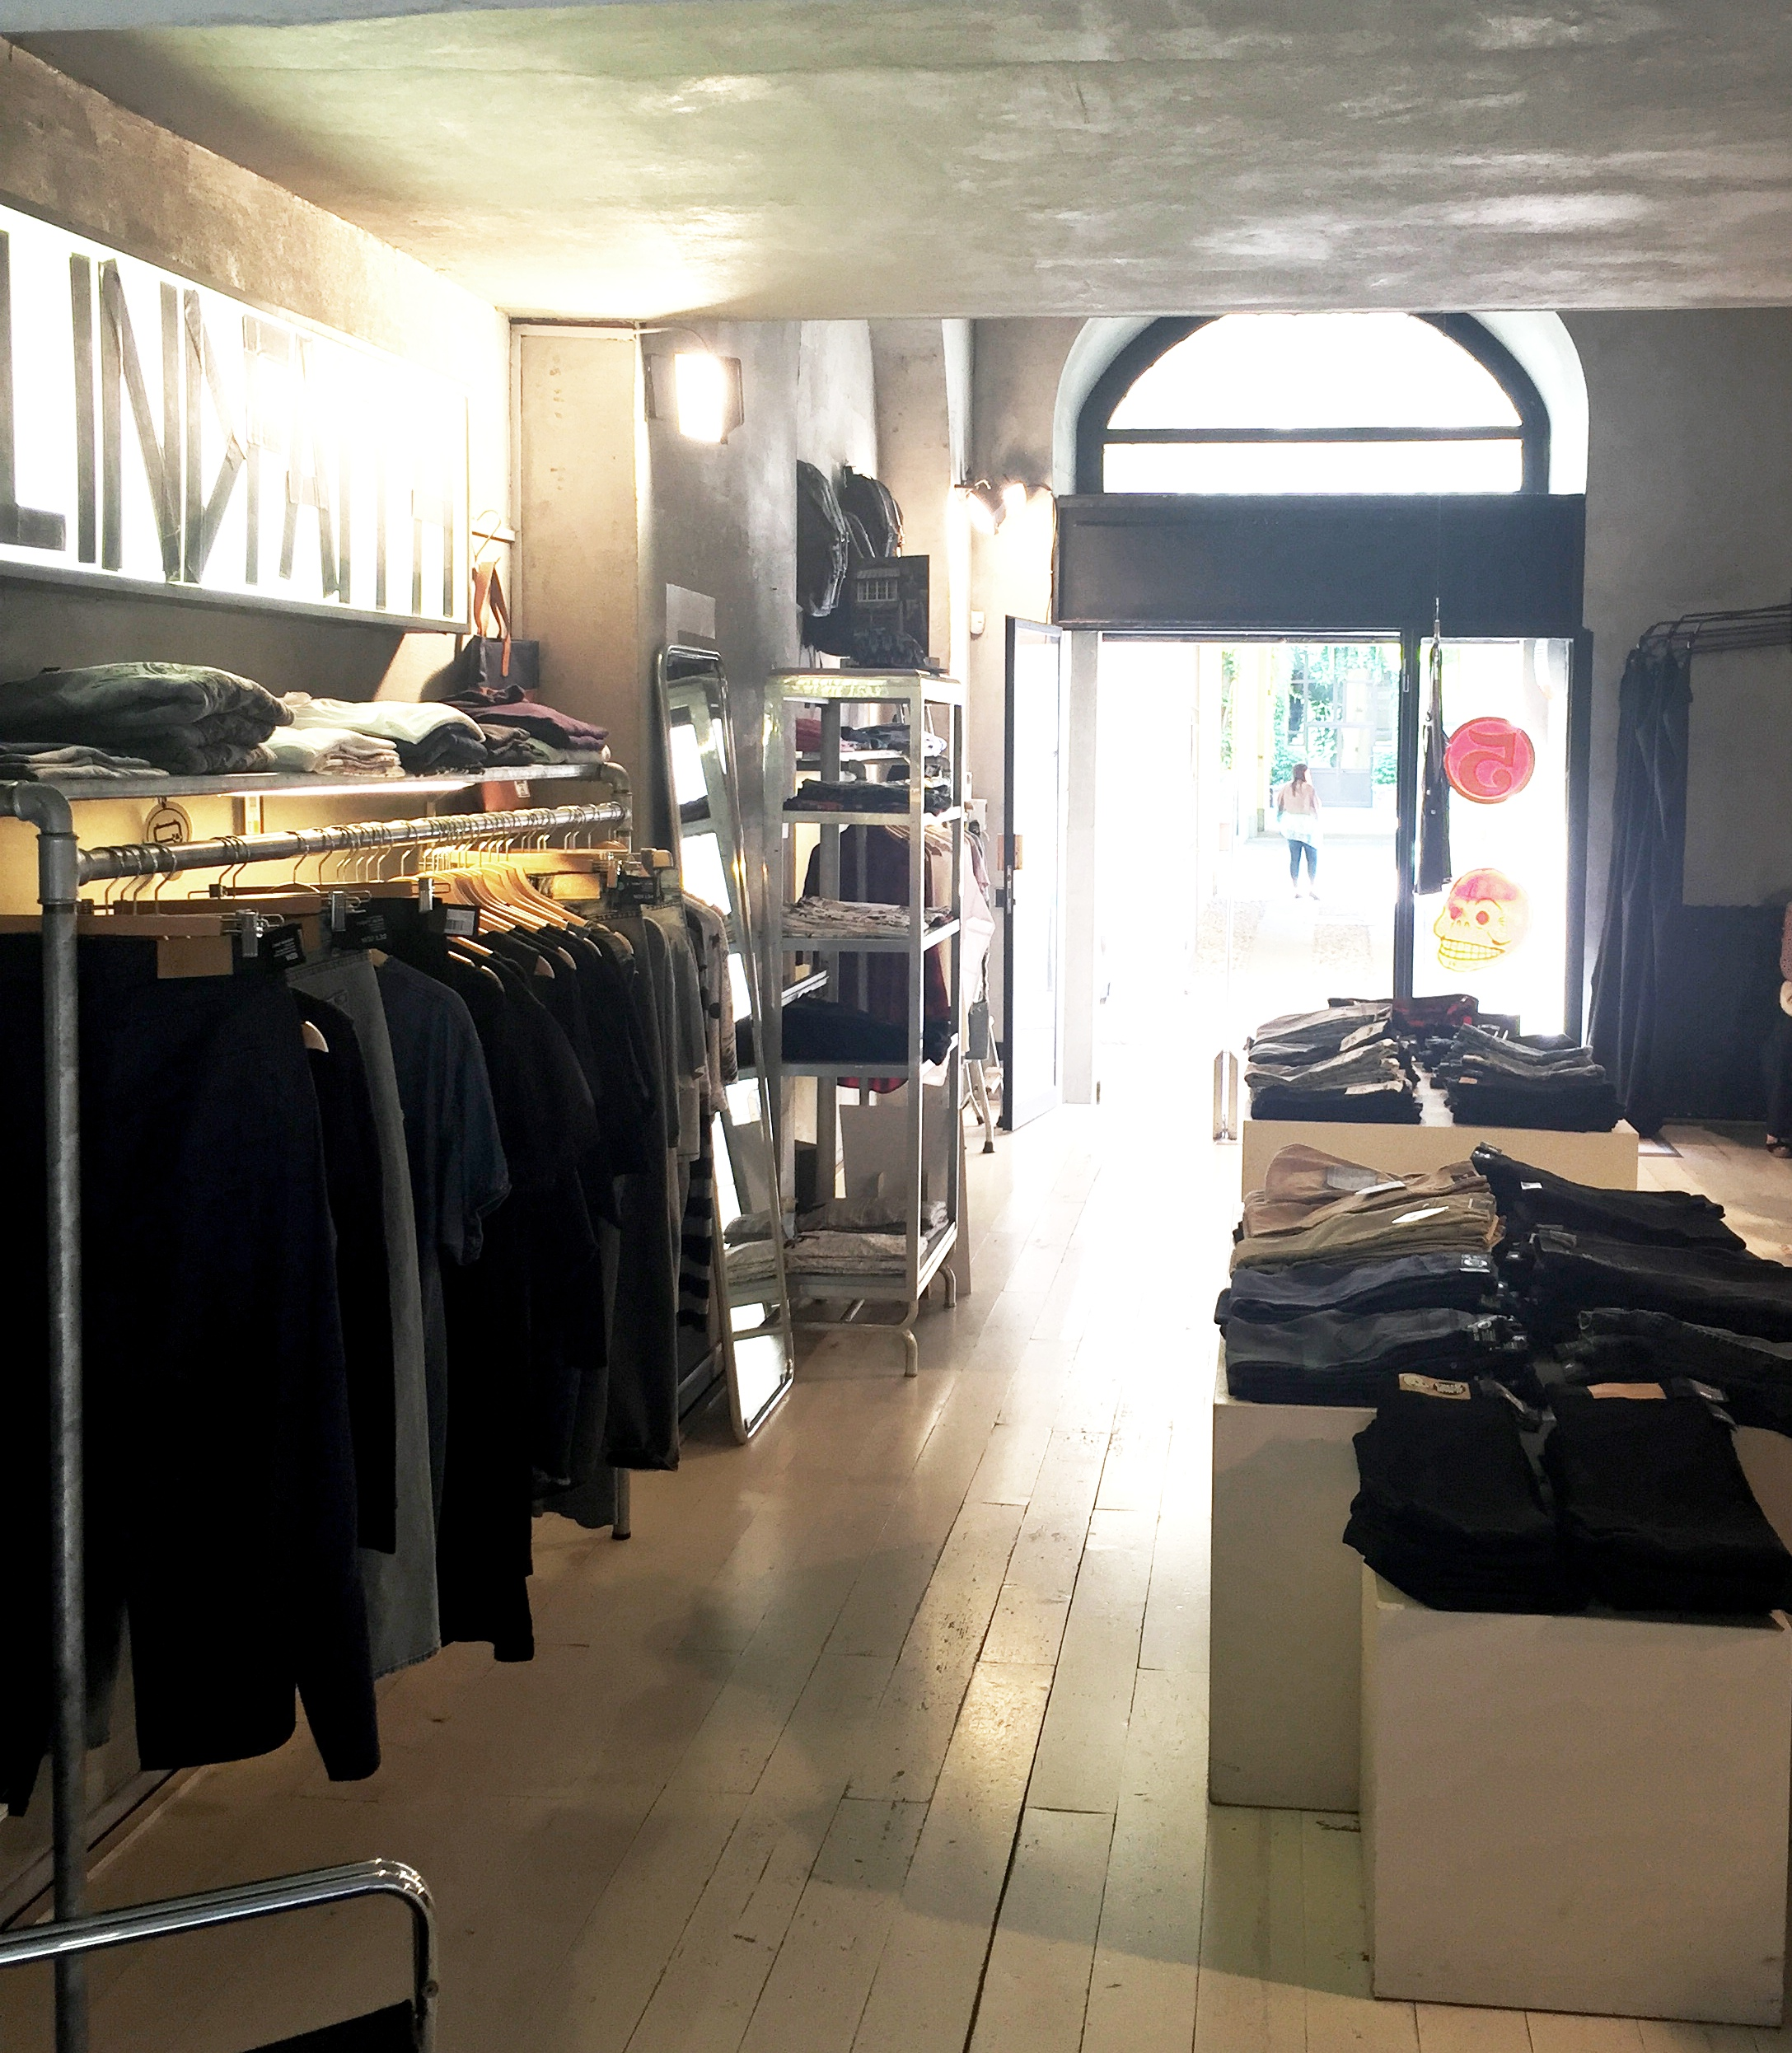 Tortona 5 - Loft, Negozio, Showroom di 50mq in Via Tortona 5 | location disallestita 3